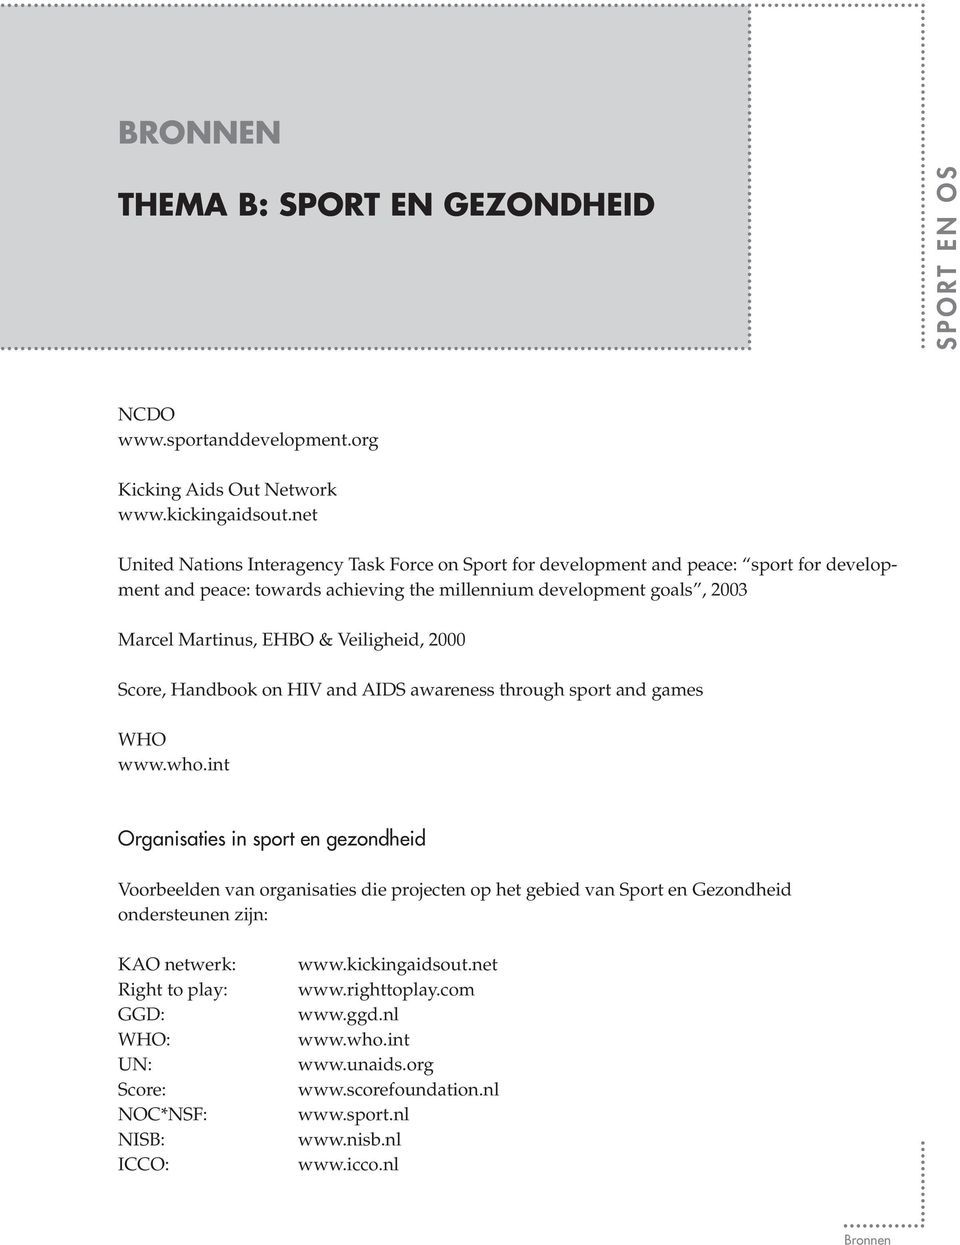 EHBO & Veiligheid, 2000 Score, Handbook on HIV and AIDS awareness through sport and games WHO www.who.